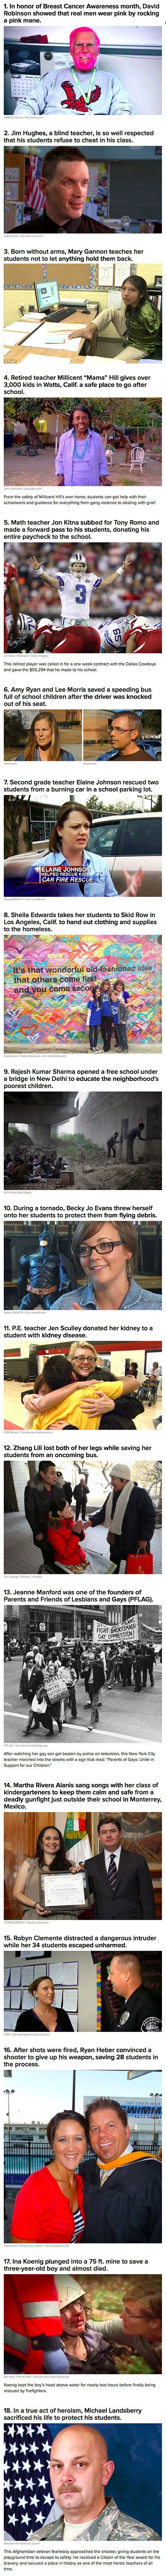 Here are 18 real-life teachers that will restore your faith in humanity.